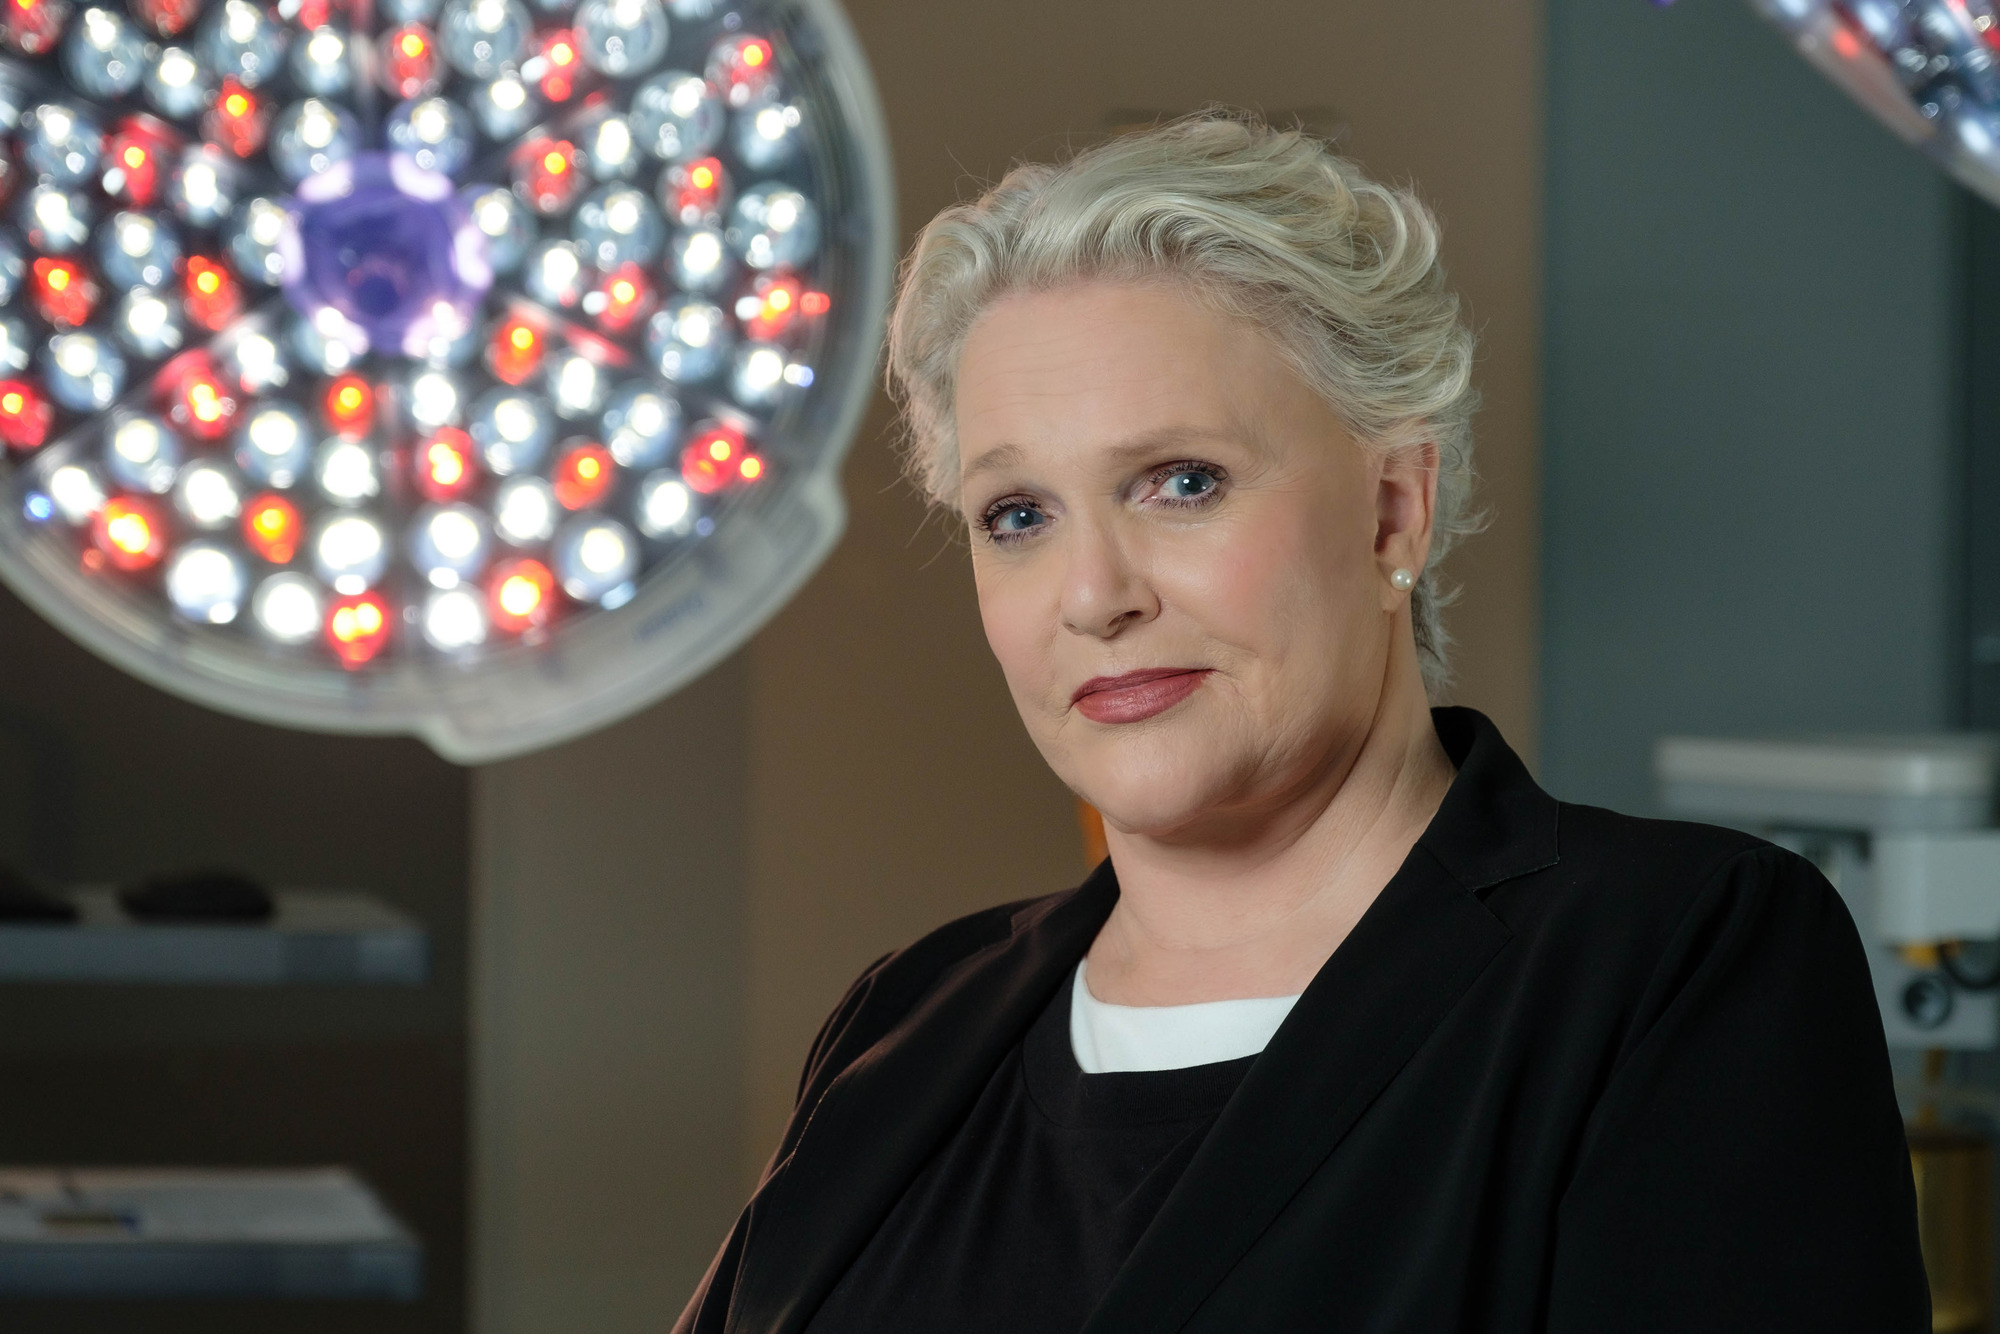 Casualty viewers beg Sharon Gless to return as Zsa Zsa permanently